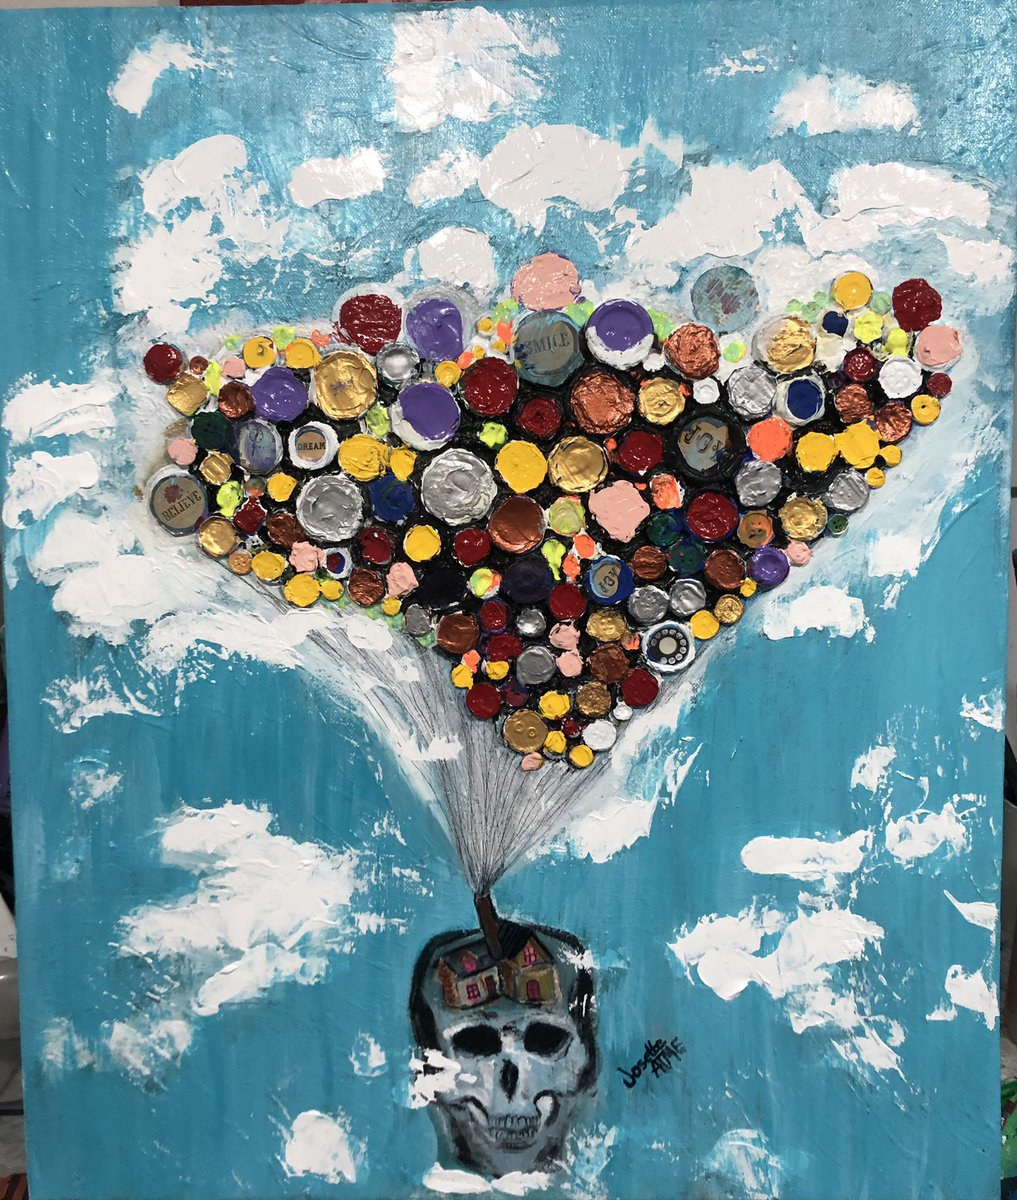 Stay Home , Fly with your Imagination. #ArtistOnTwitter #mixedmedia #PainterOfTheNight #painting #SaturdayNight #SaturdayVibes #StayHome #StaySafe #fly #imagination #ArtLovers #art #clouds #sky #up #high